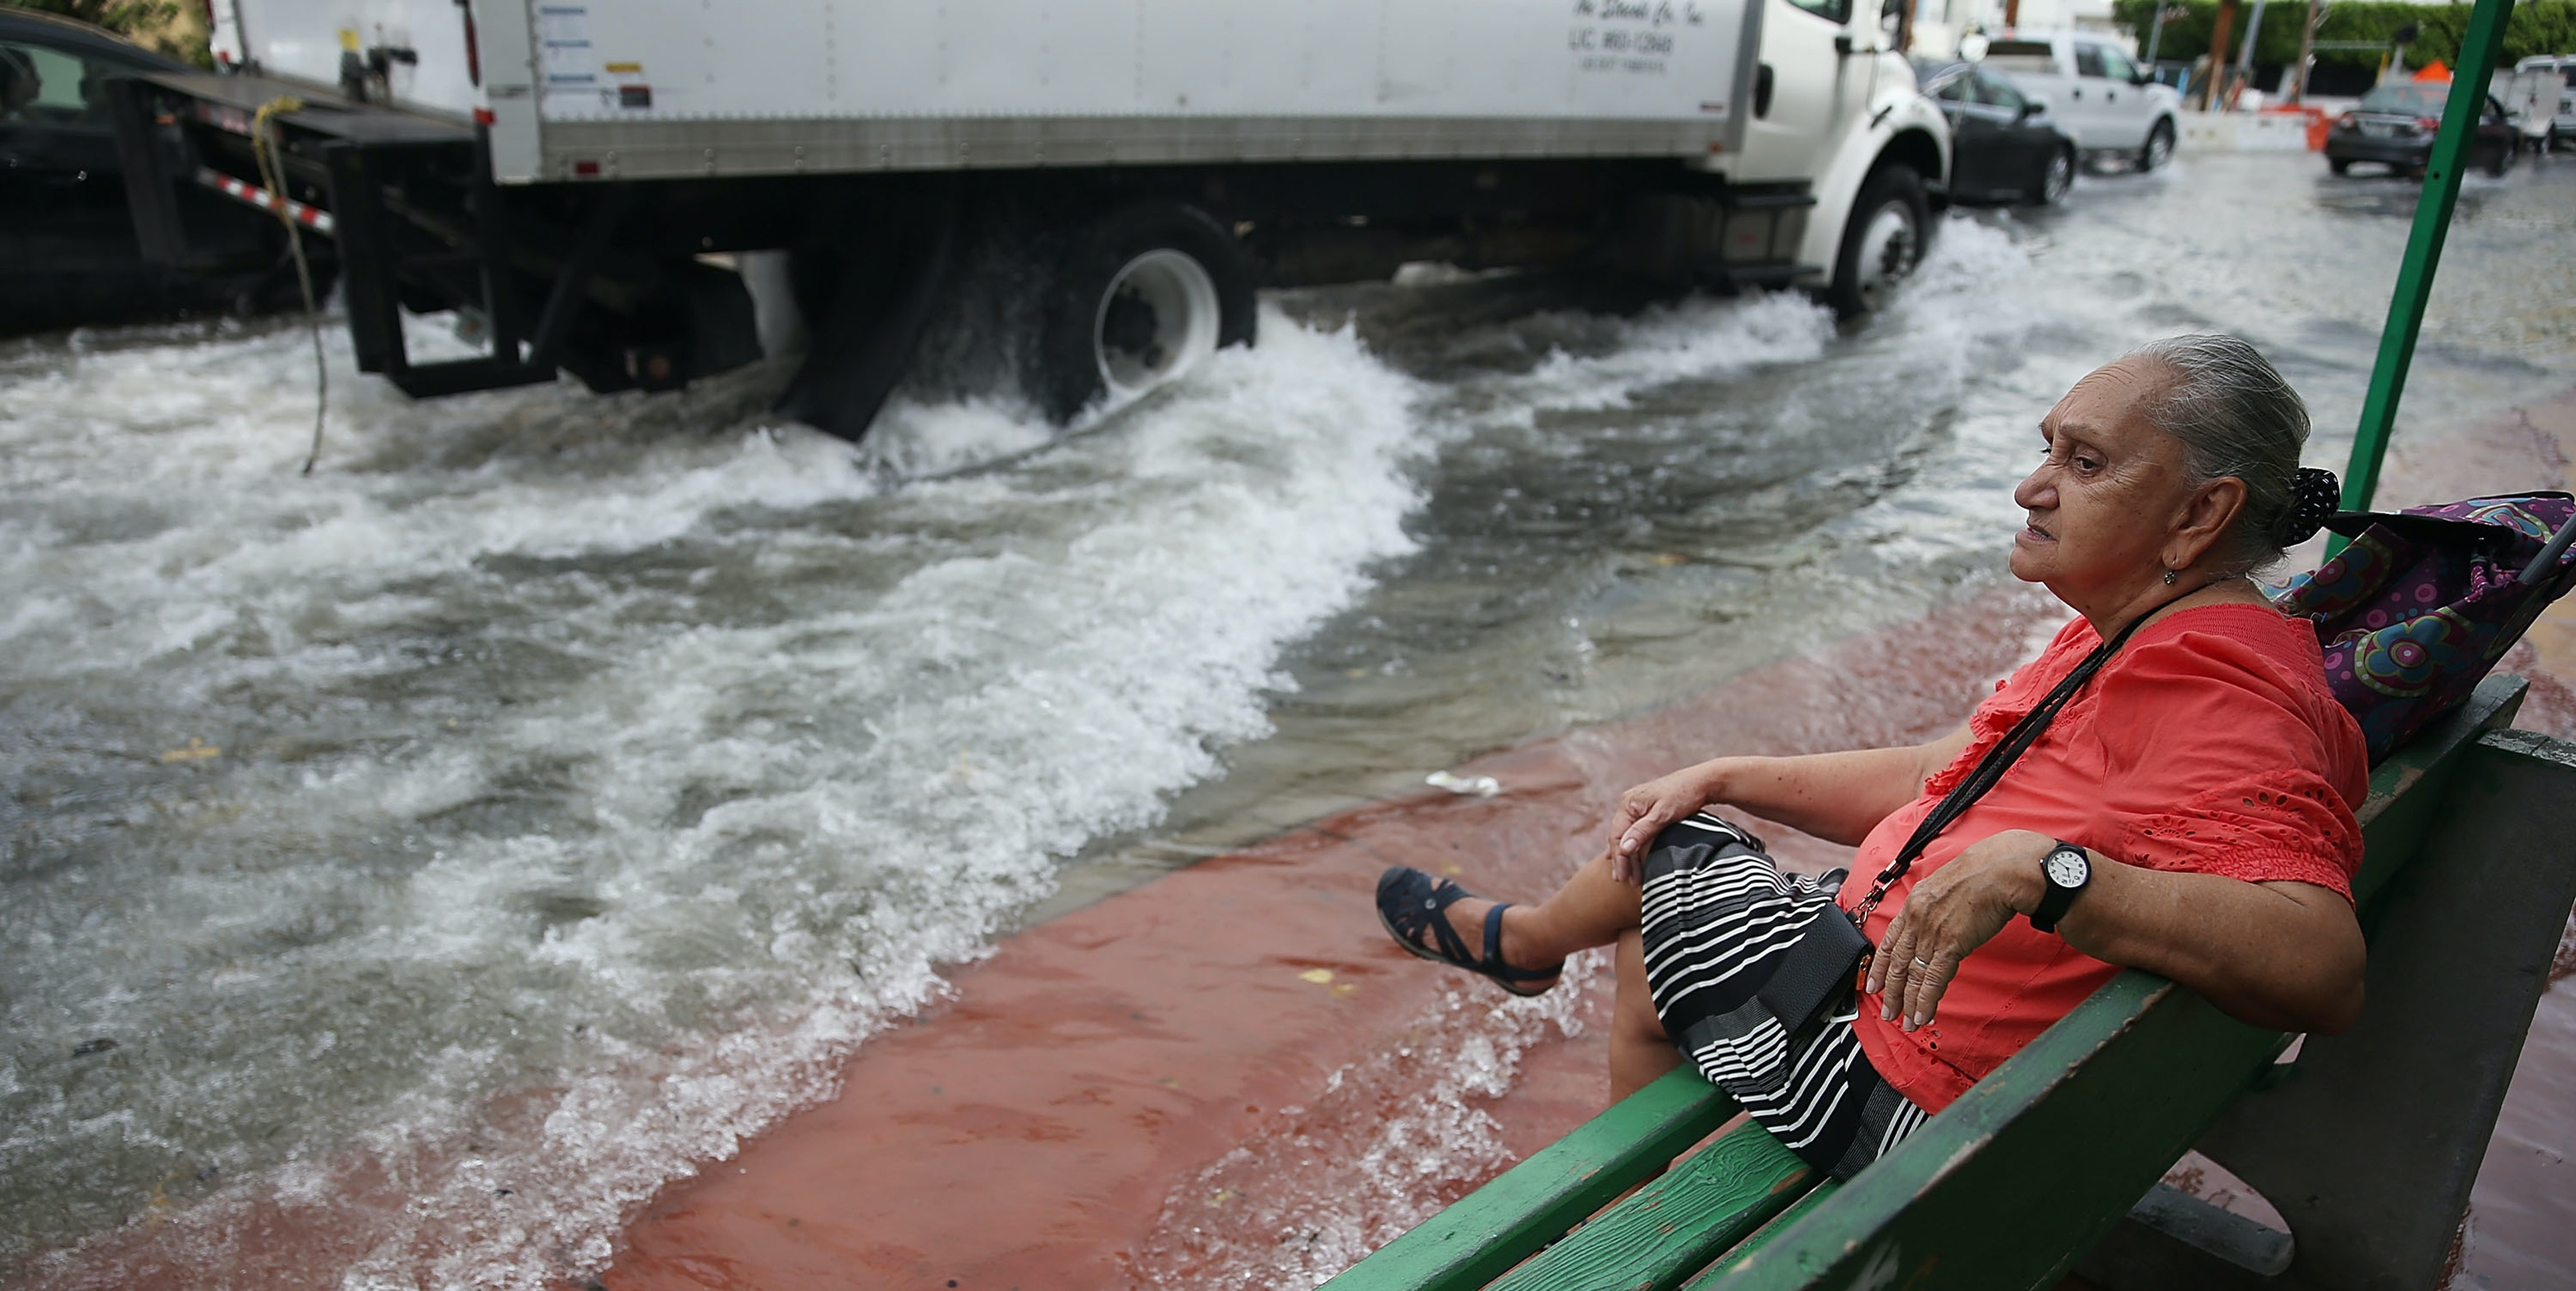 MIAMI BEACH, FL - SEPTEMBER 29:  Mayabel Rents waits for a bus next to a flooded street that was caused by the combination of the lunar orbit which caused seasonal high tides and what many believe is the rising sea levels due to climate change on September 29, 2015 in Miami Beach, Florida. The City of Miami Beach is in the middle of a five-year, $400 million storm water pump program and other projects that city officials hope will keep the ocean waters from inundating the city as the oceans rise even more in the future.  (Photo by Joe Raedle/Getty Images)